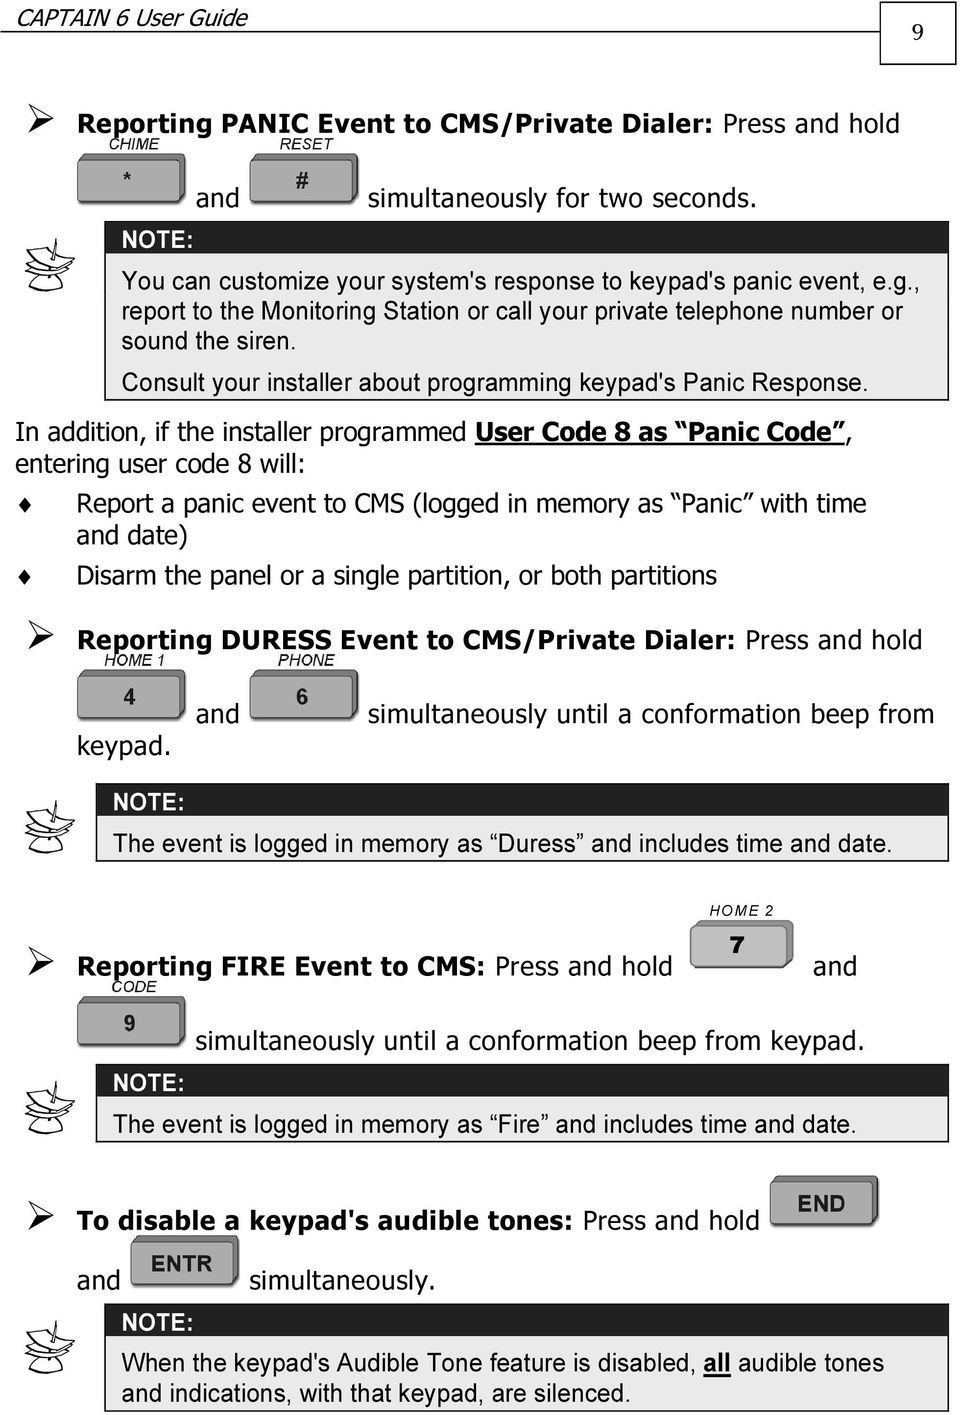 In addition, if the installer programmed User Code 8 as Panic Code, entering user code 8 will: Report a panic event to CMS (logged in memory as Panic with time and date) Disarm the panel or a single